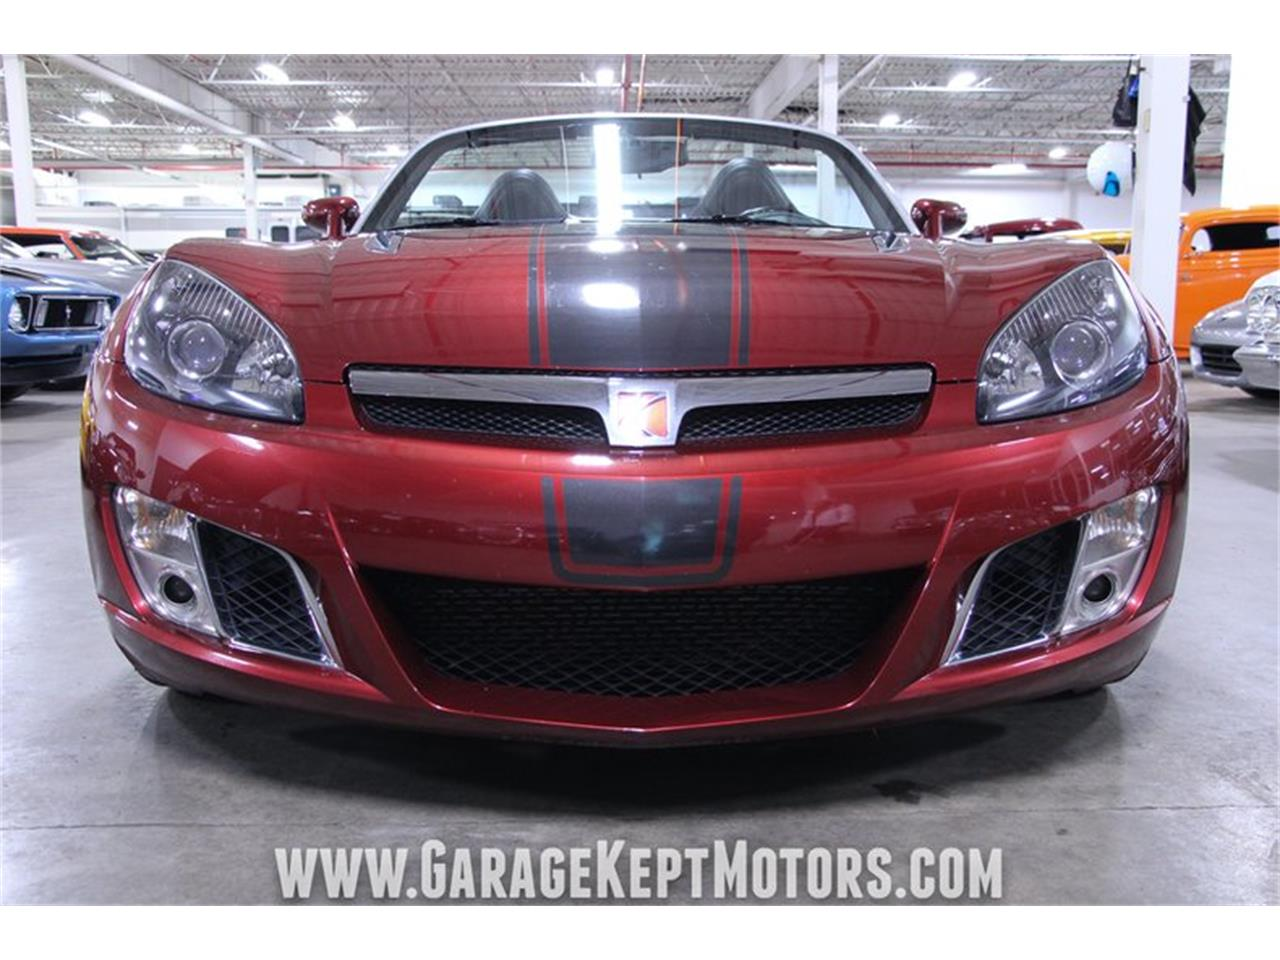 2009 Saturn Sky for sale in Grand Rapids, MI – photo 31